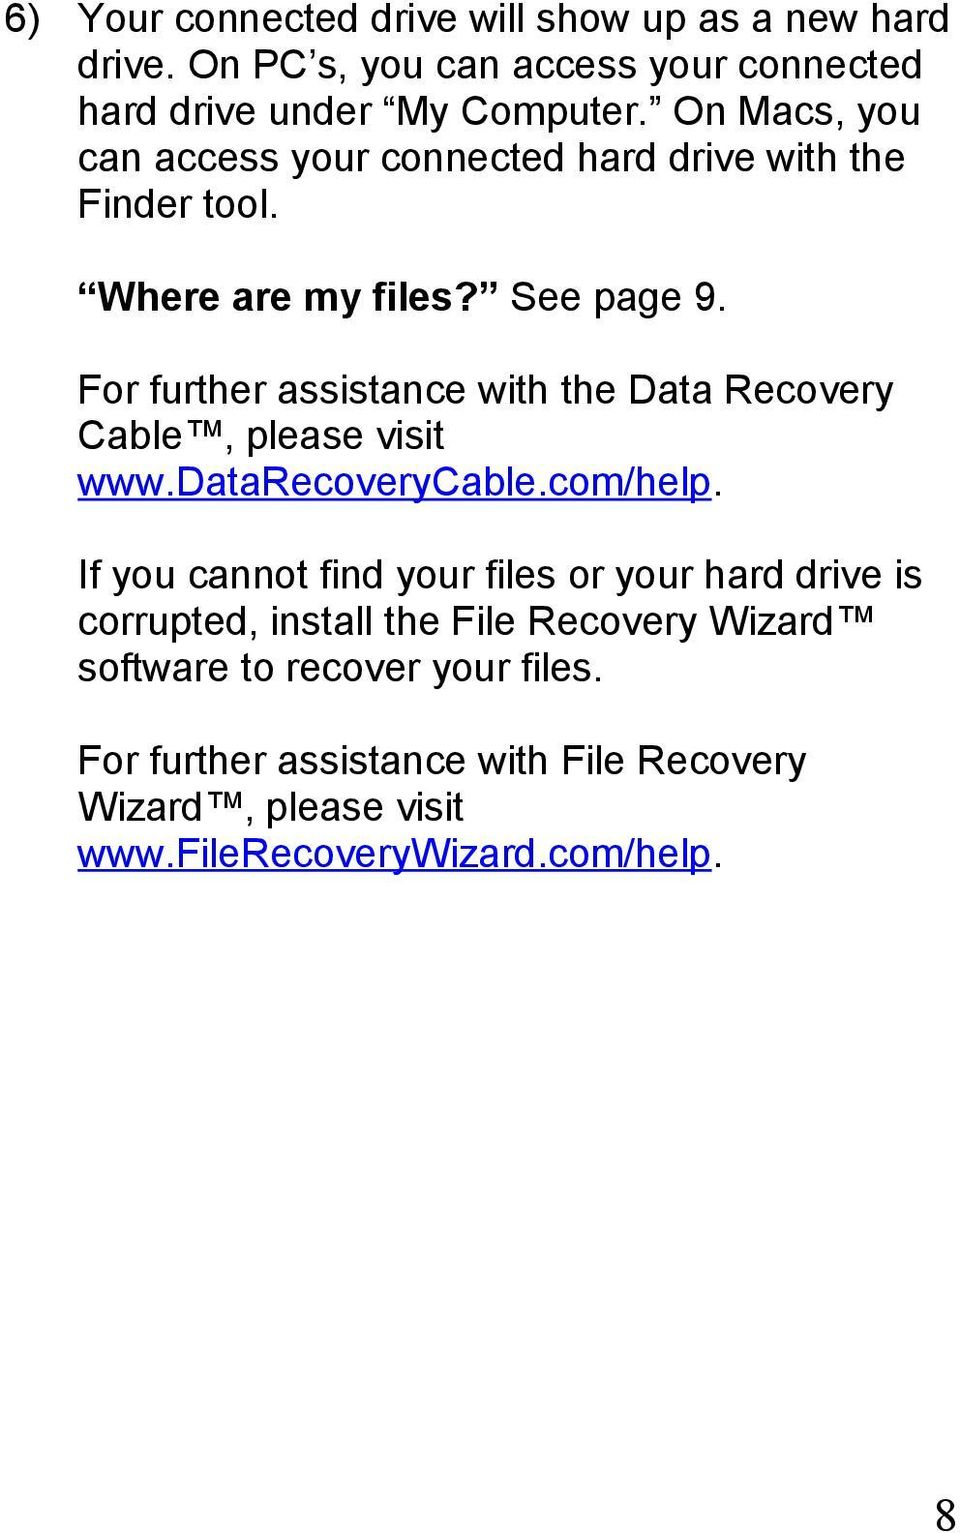 For further assistance with the Data Recovery Cable, please visit www.datarecoverycable.com/help.